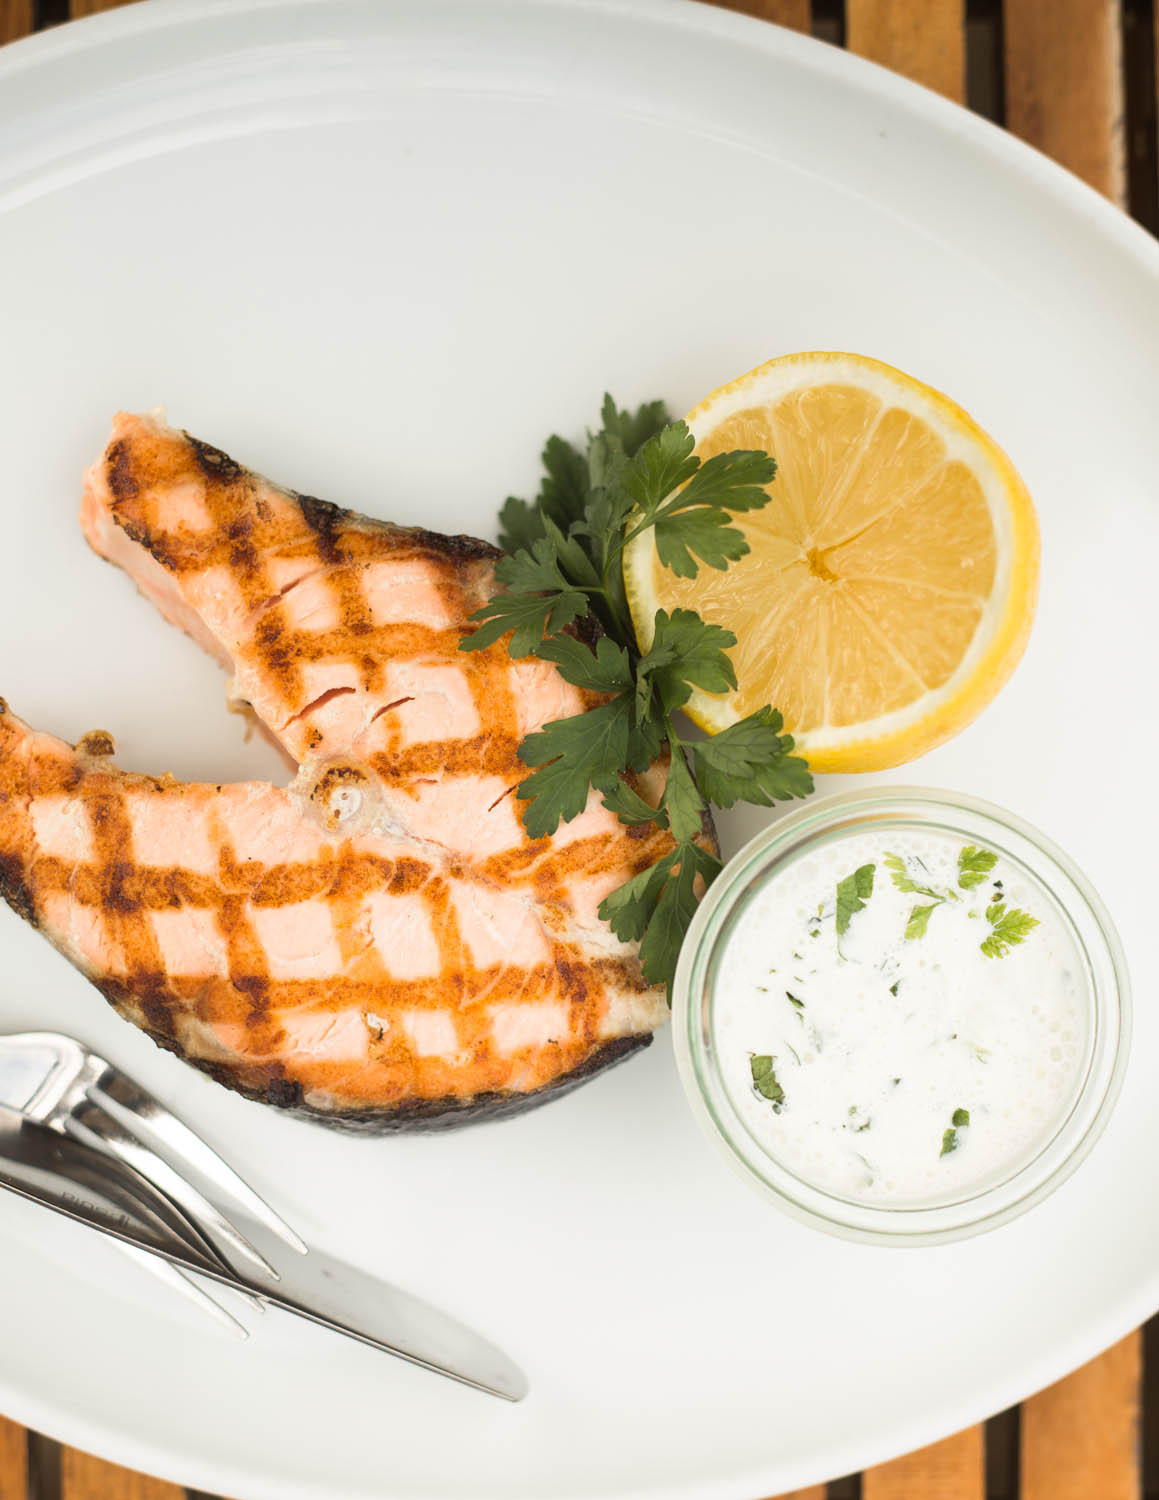 A tempting grilled salmon at Schwellenmätelli.